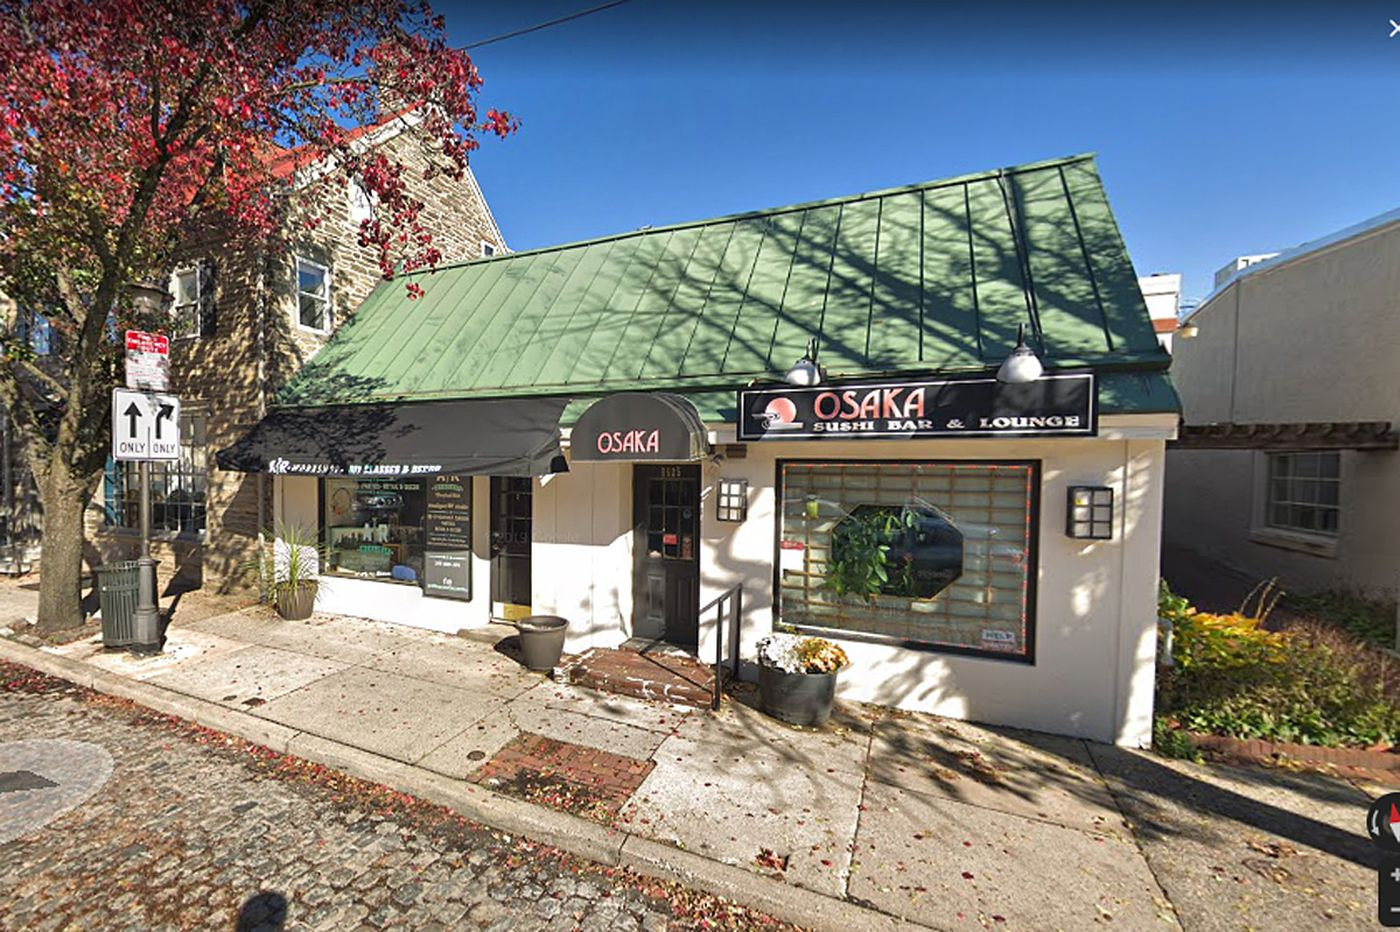 Osaka restaurant in Chestnut Hill, which agreed to pay $1 million to settle a wage-theft case, is now closed